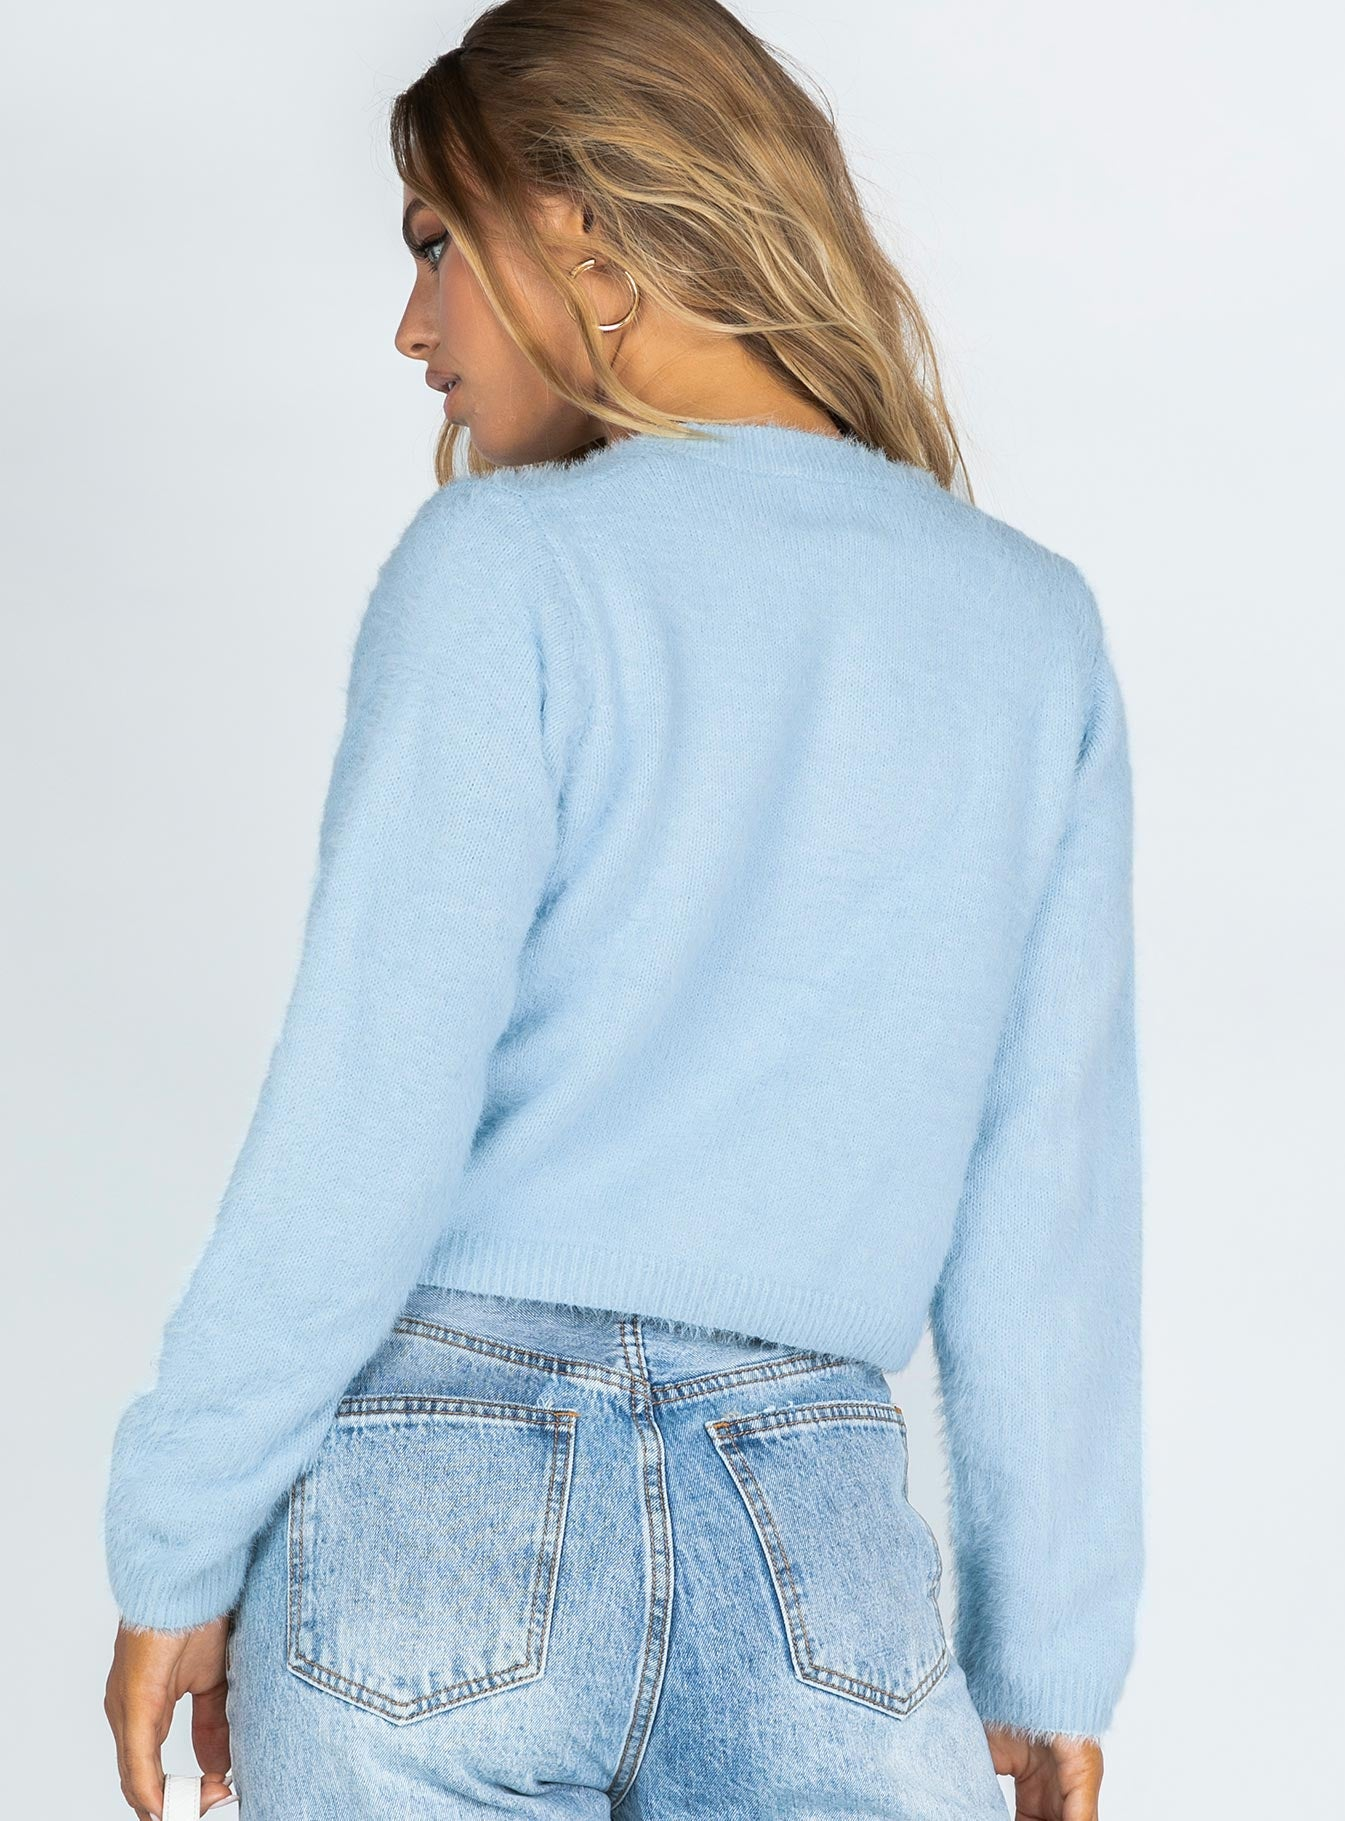 Cindy Cropped Cardigan Blue